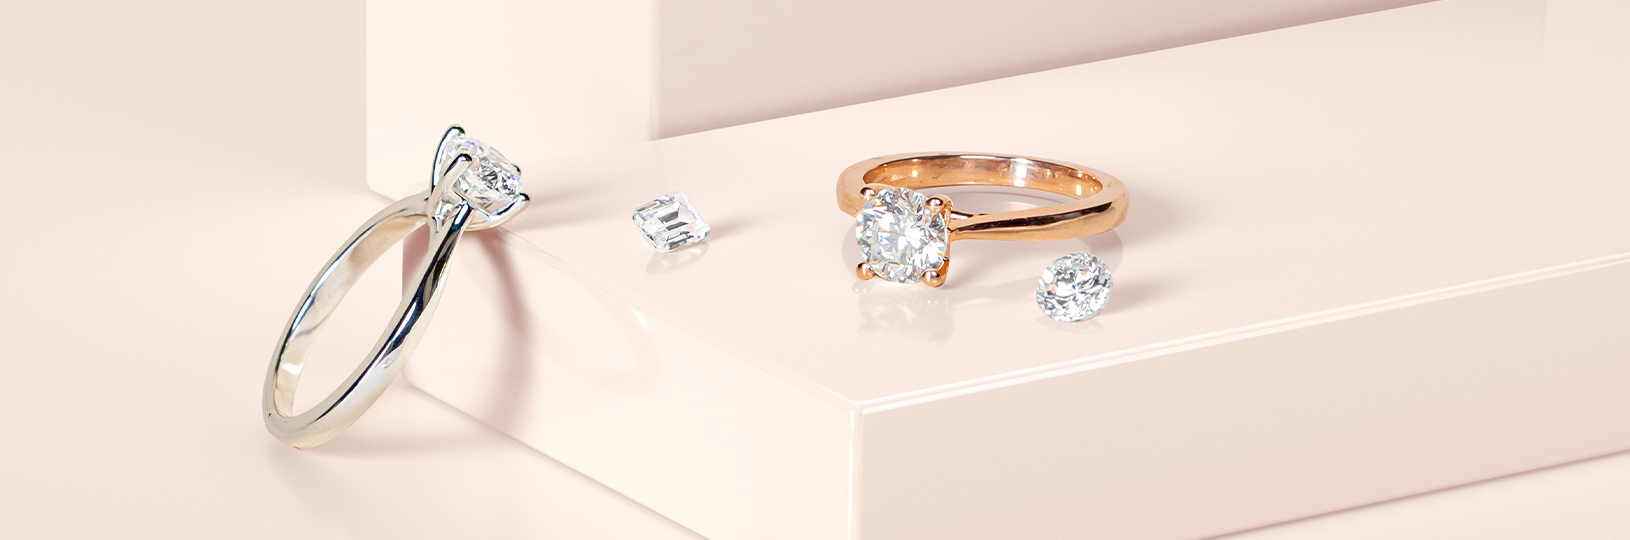 Two engagement rings featuring lab grown diamonds